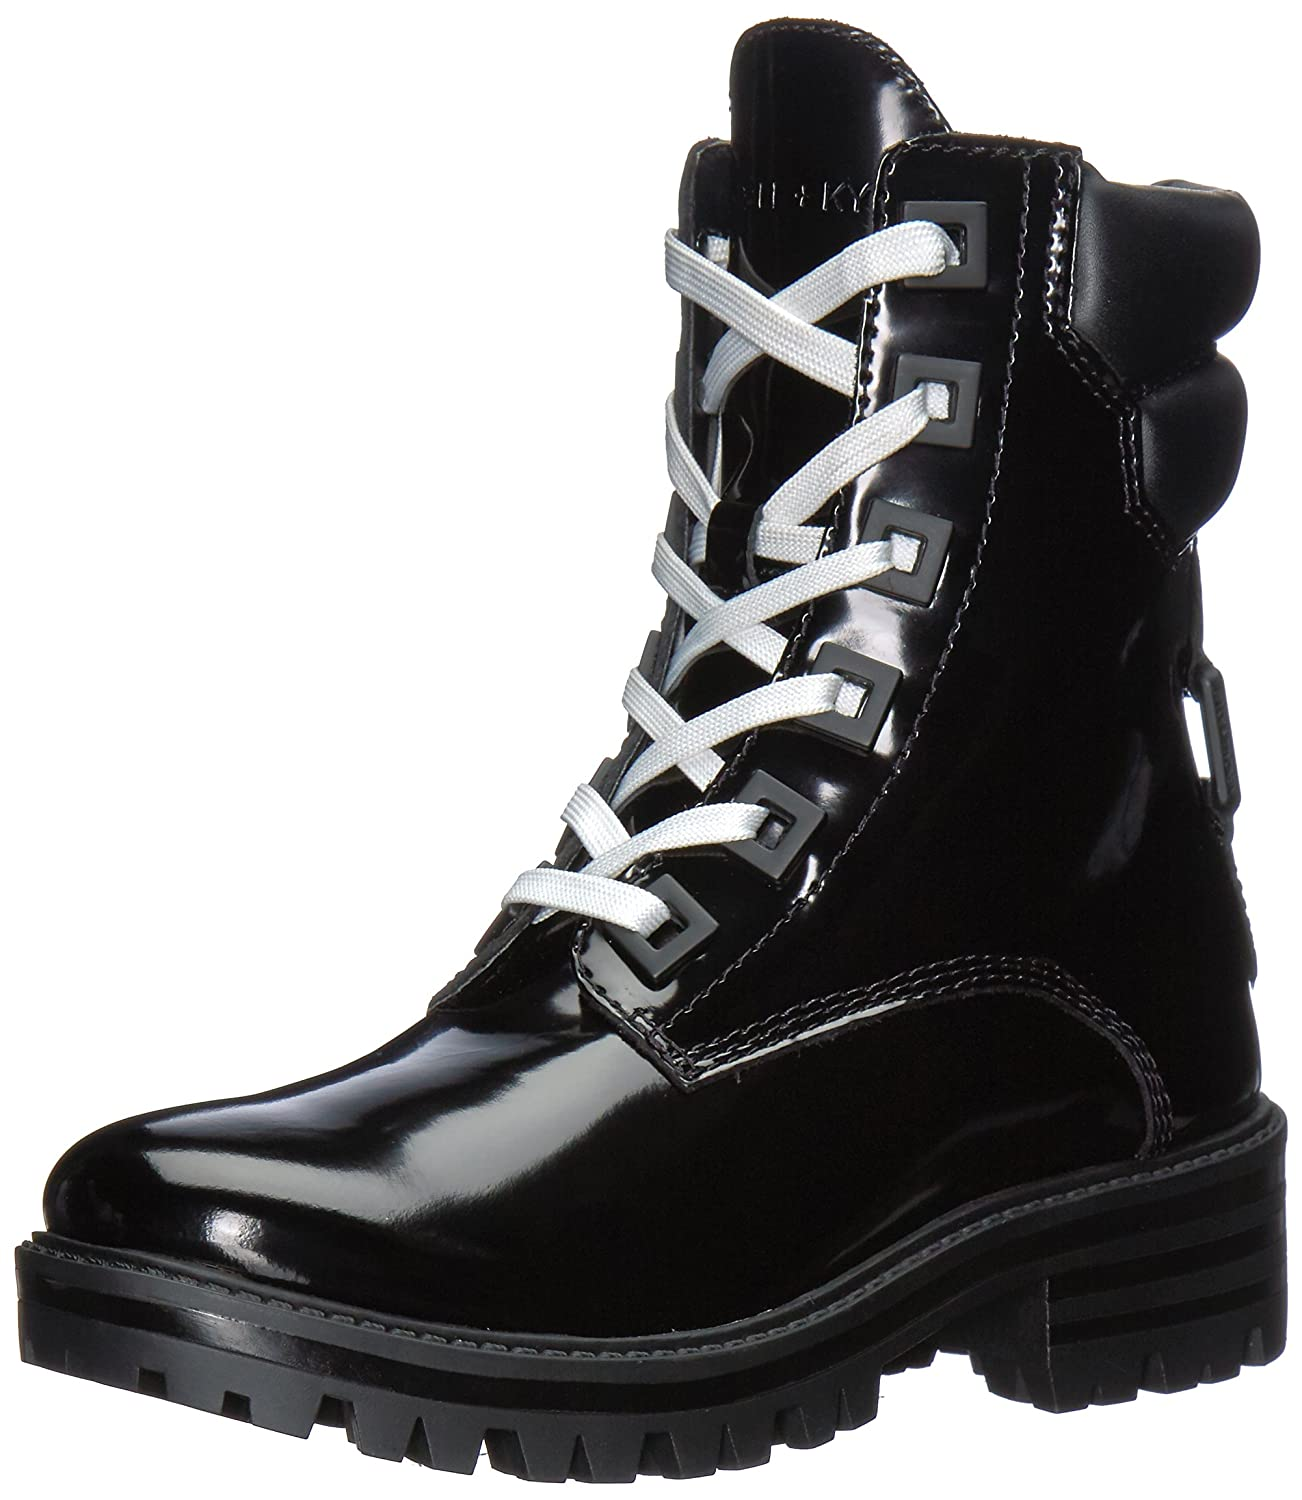 KENDALL + KYLIE Women's East Combat Boot B071DQQKDB 7 B(M) US|Black